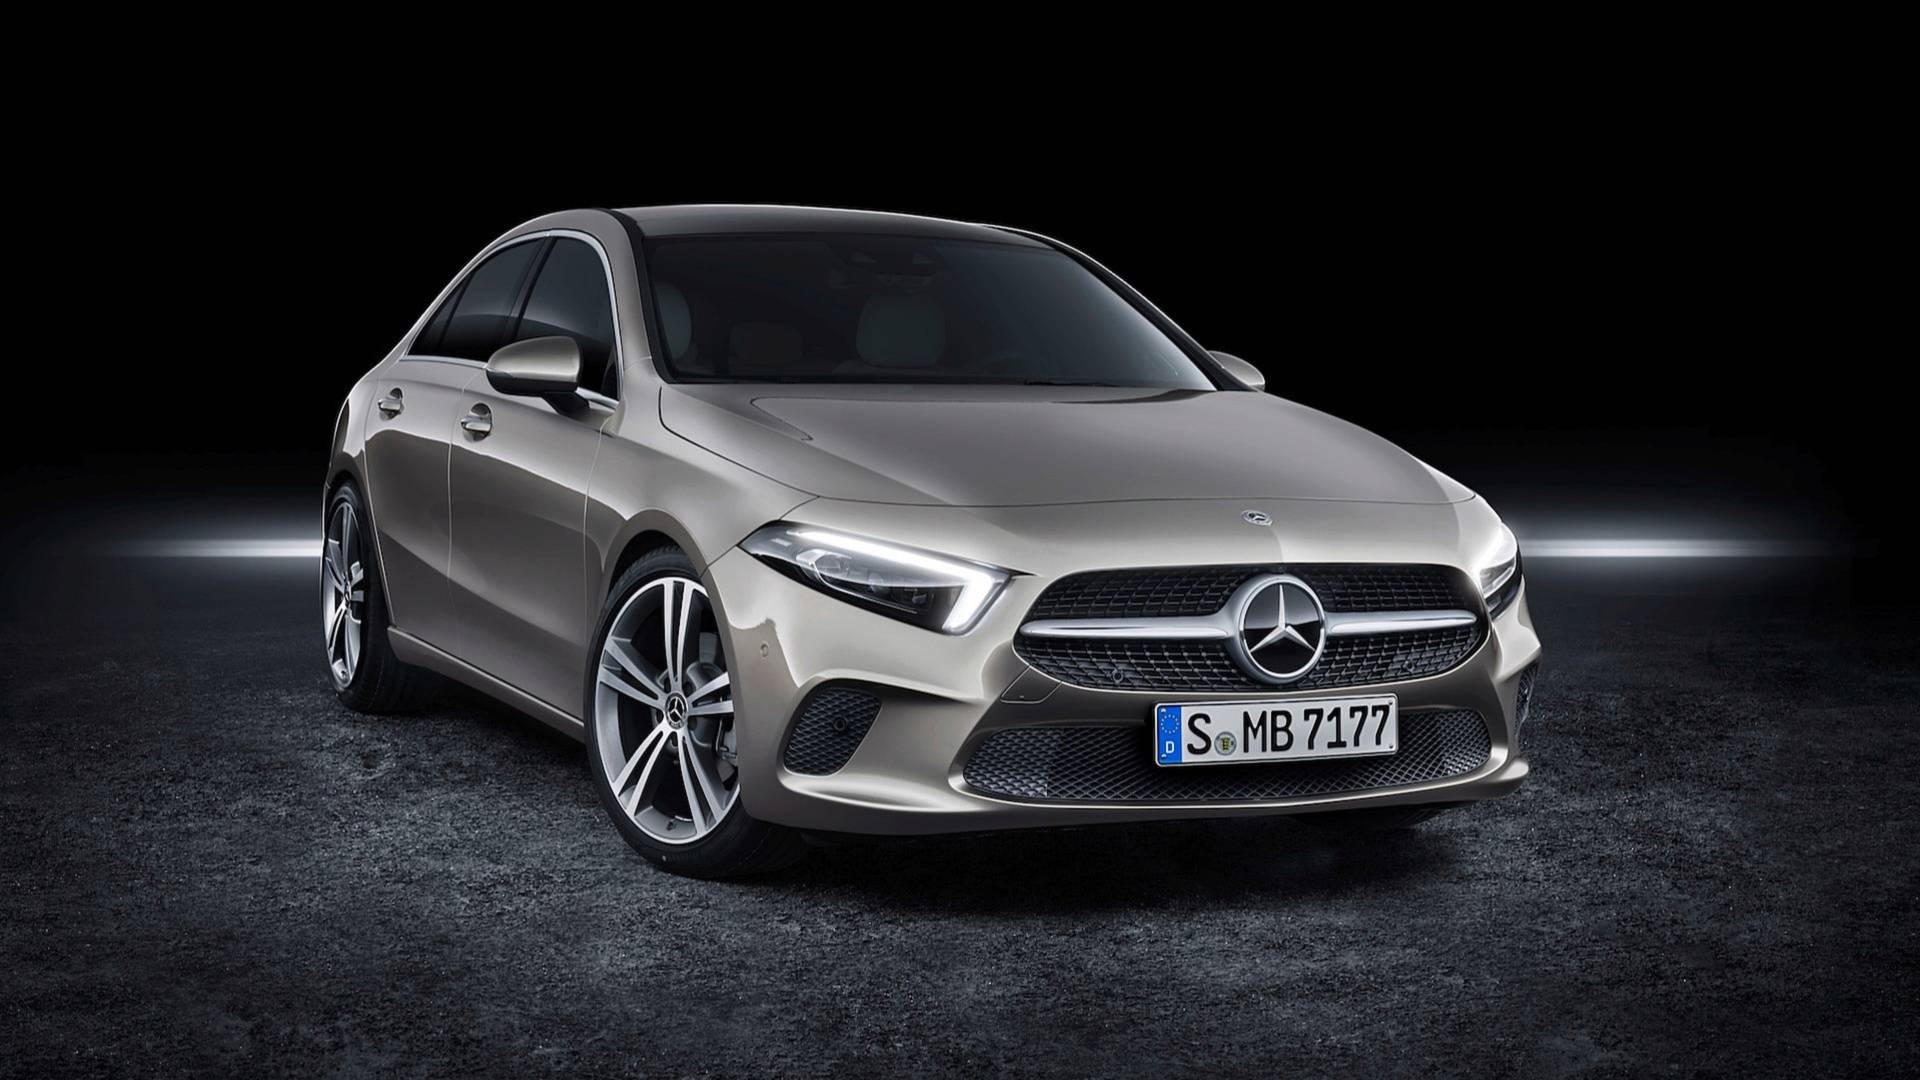 Mercedes A Class Sedan Goes On Sale In Europe Pricing Announced